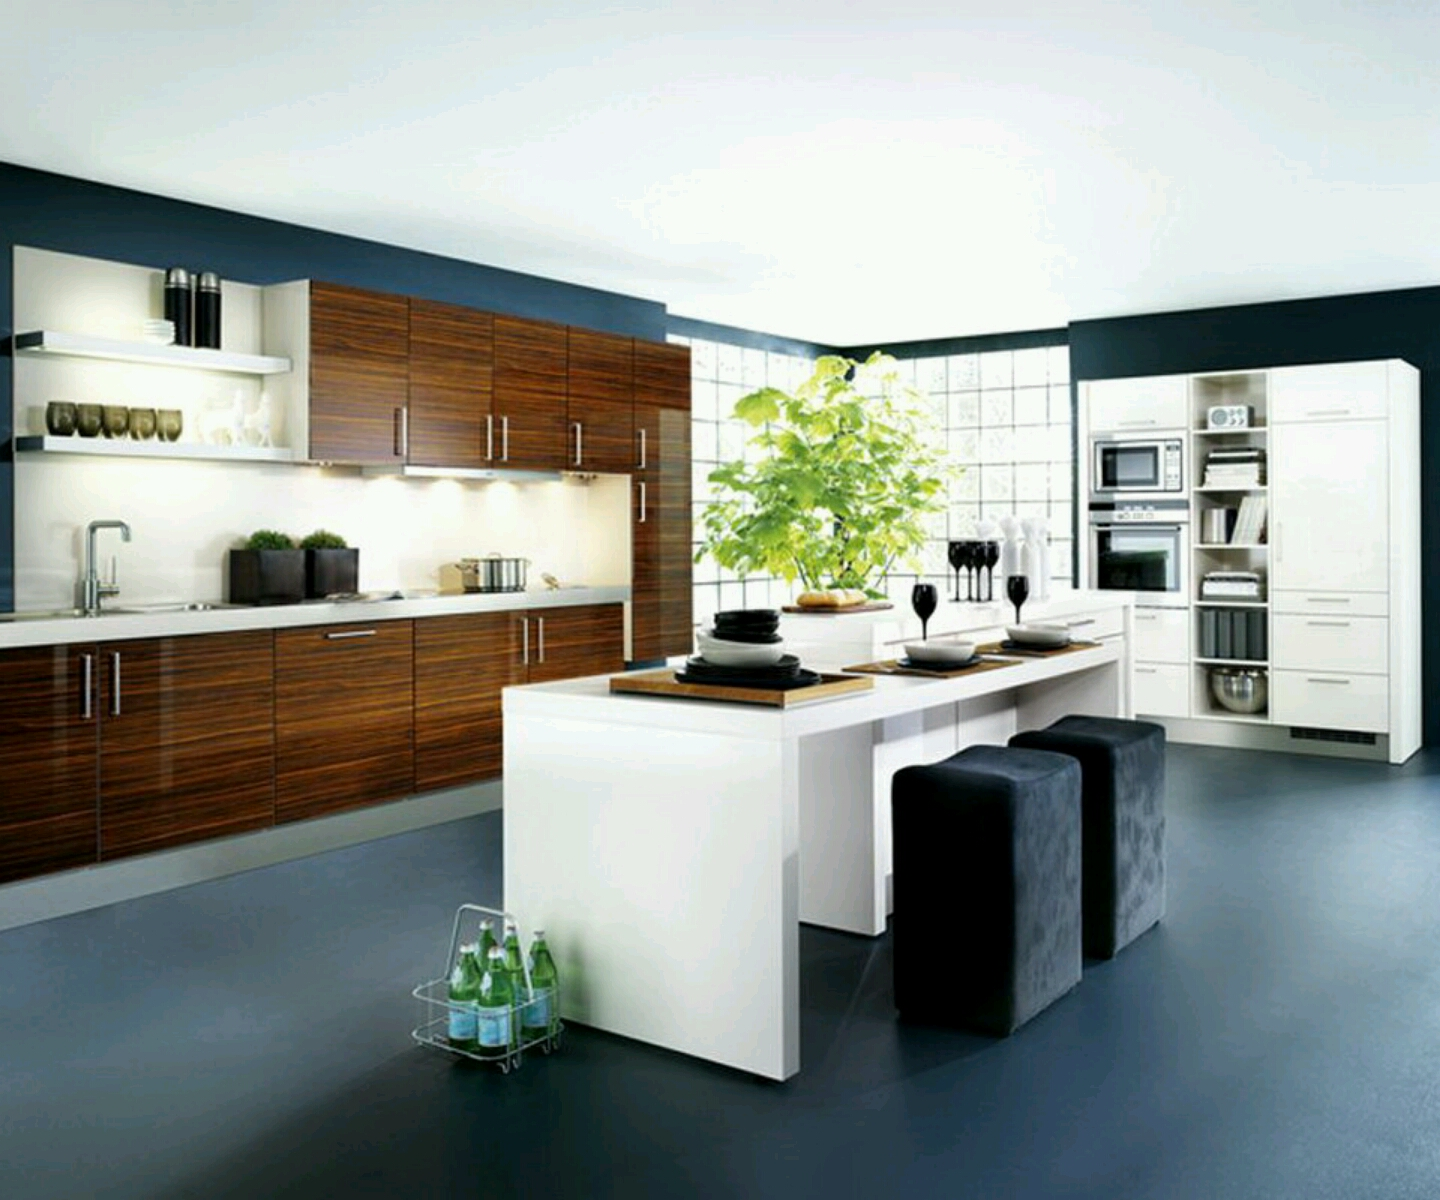 New home designs latest kitchen cabinets designs modern for Latest kitchen cabinets